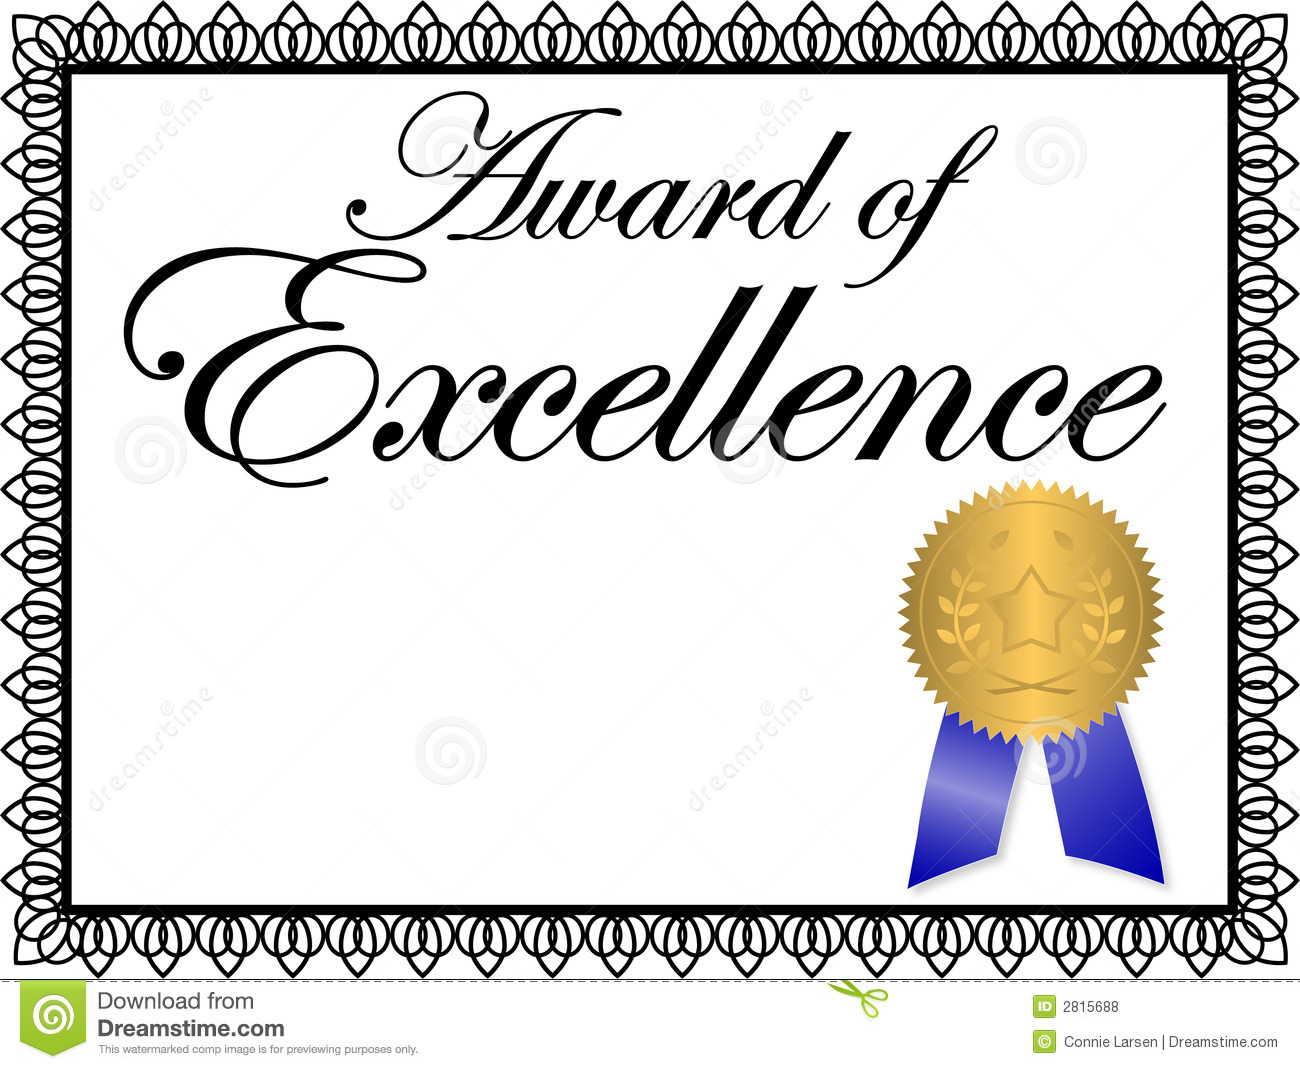 Illustration of a certificate...Award of Excellence...personalize with ...